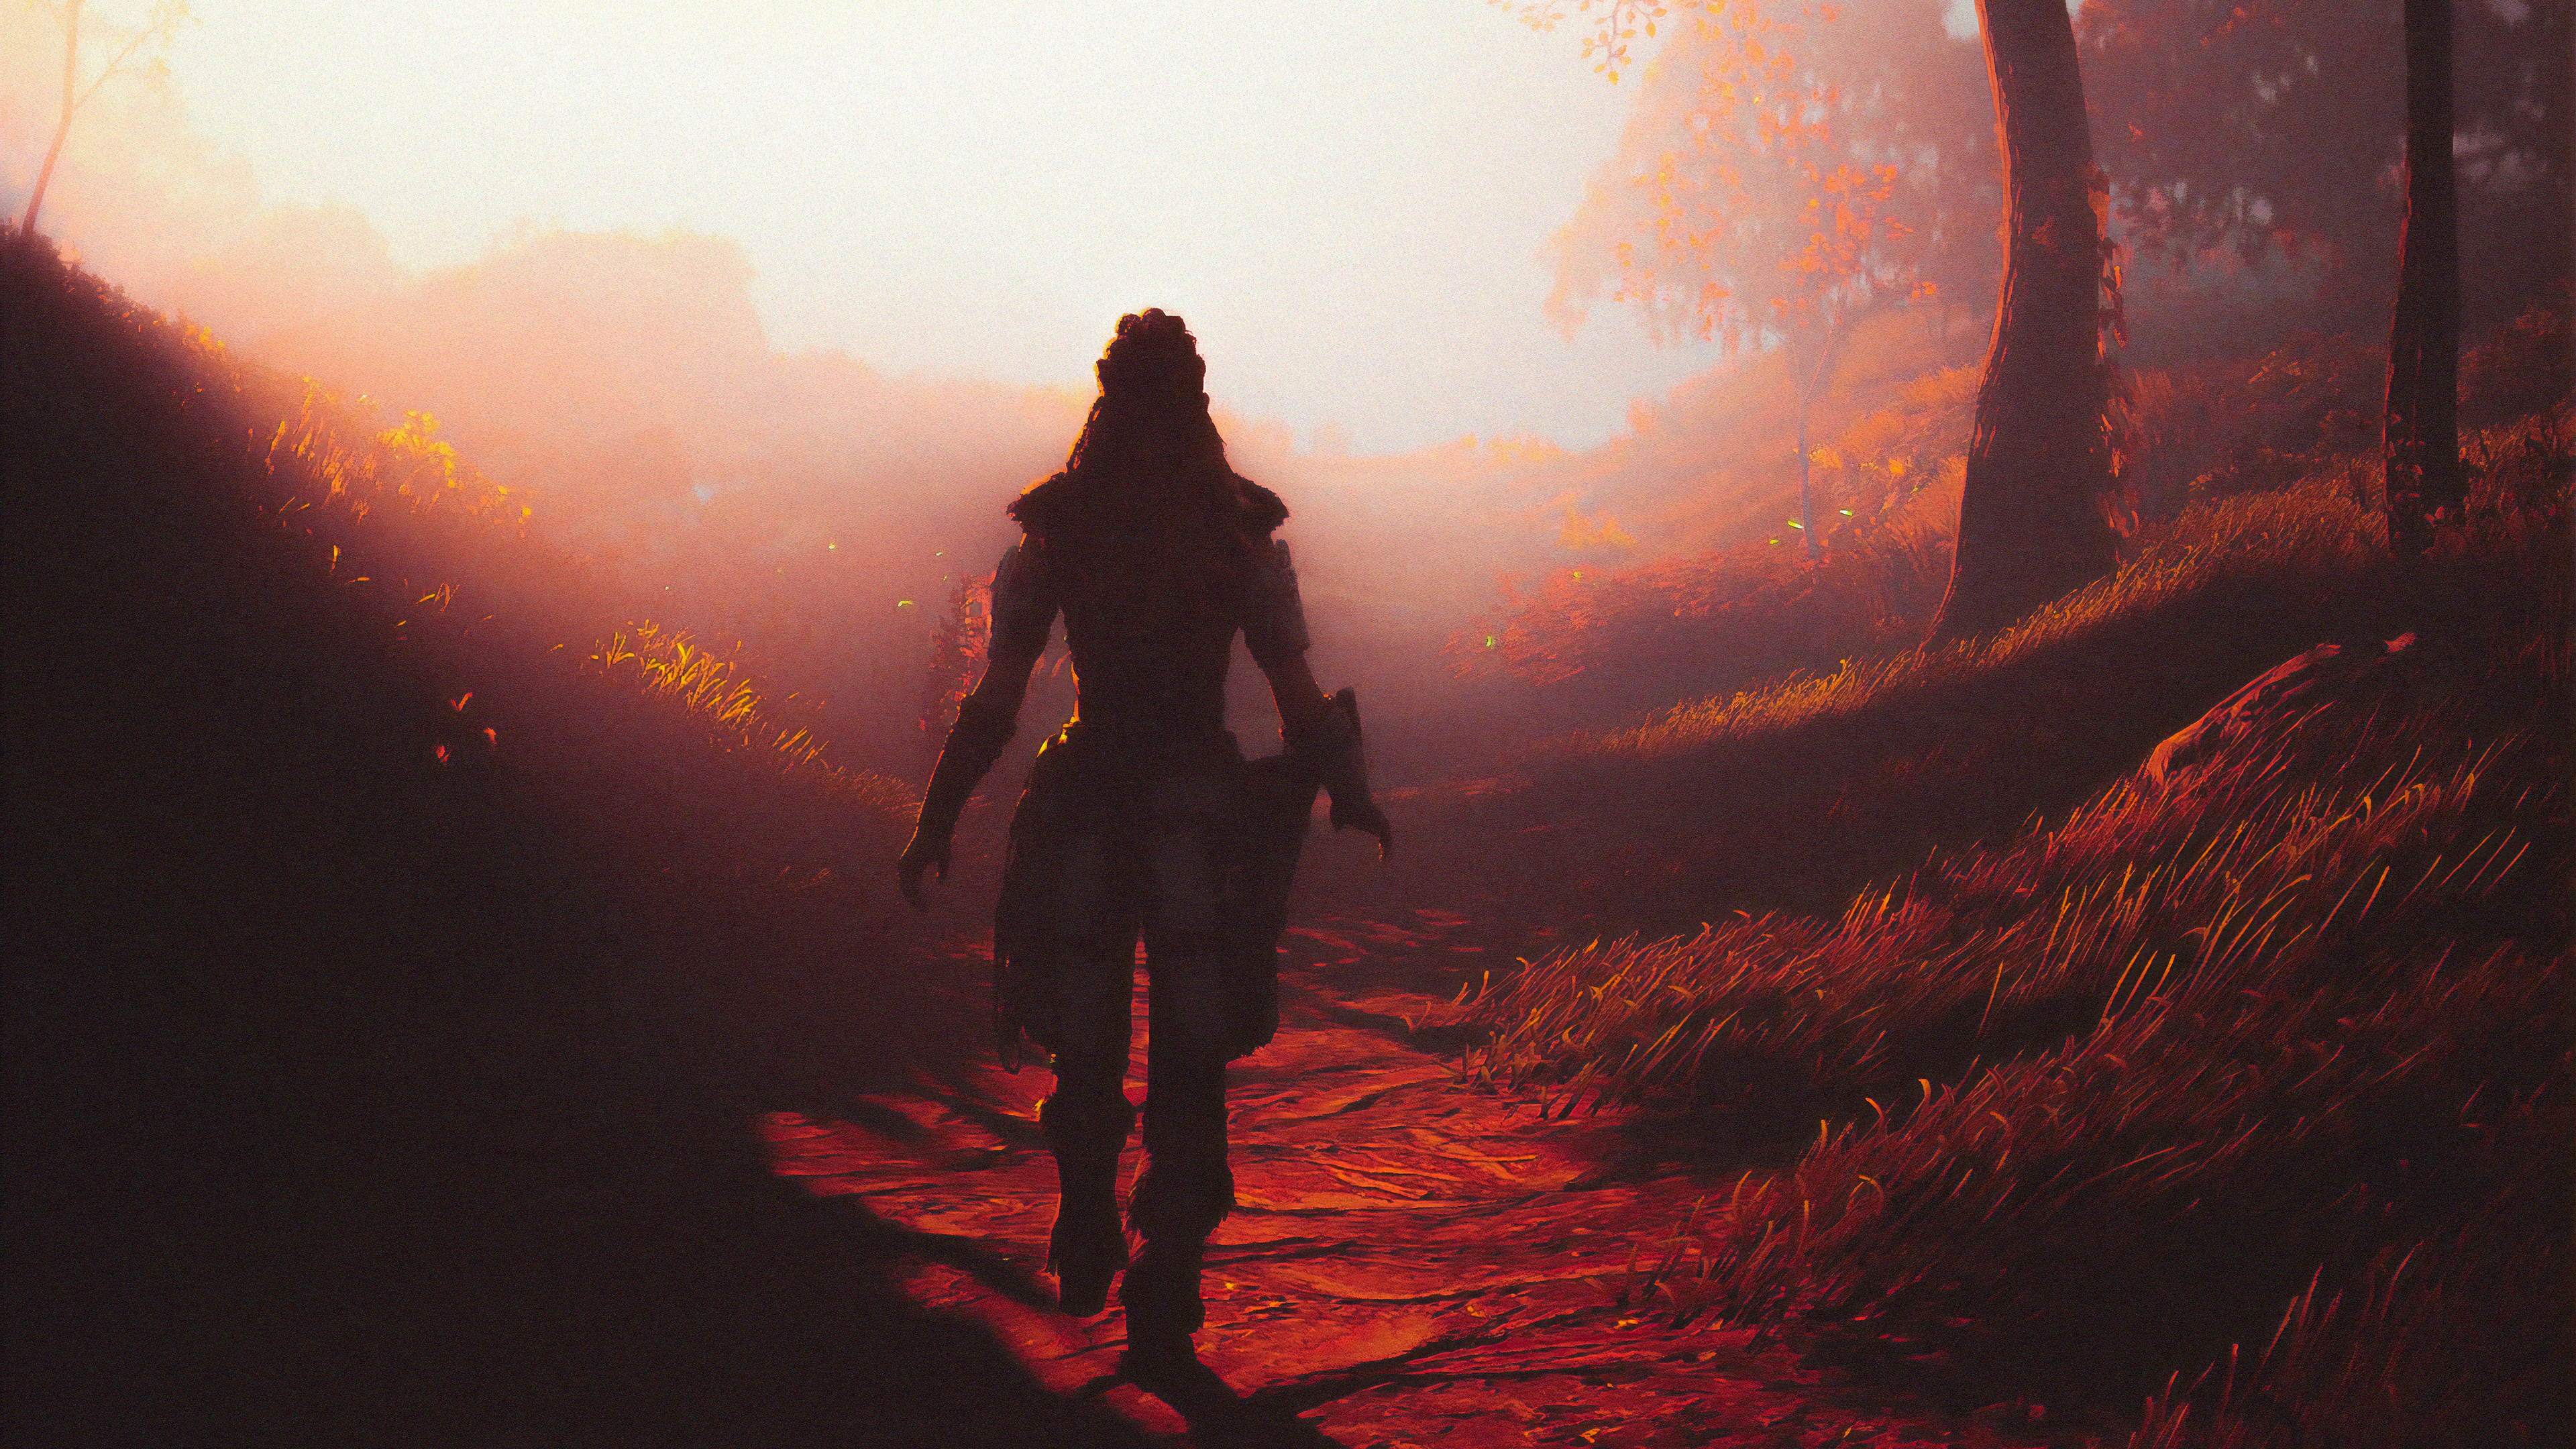 shadow owers its birth to light 1570393472 - Shadow Owers Its Birth To Light - xbox games wallpapers, ps games wallpapers, pc games wallpapers, horizon zero dawn wallpapers, hd-wallpapers, games wallpapers, 4k-wallpapers